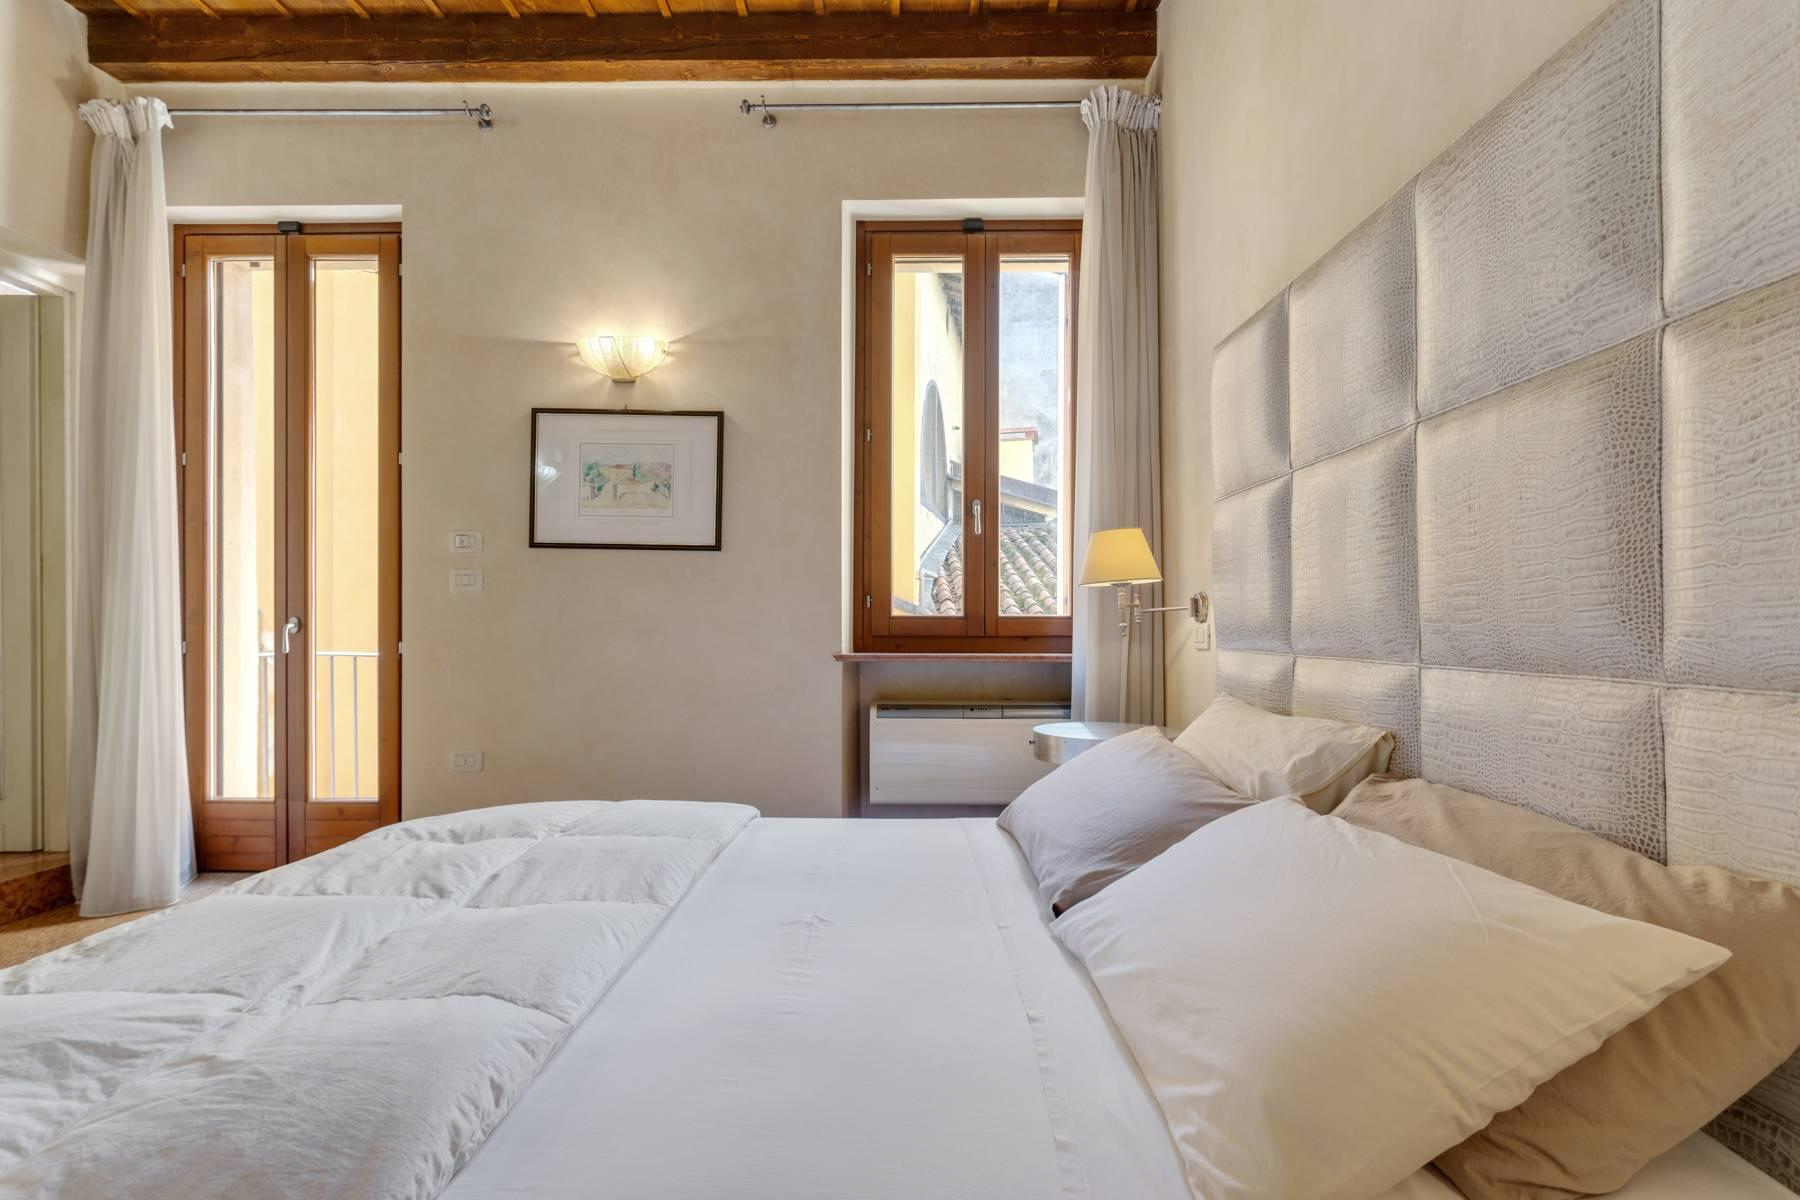 Exquisite apartment just few steps away from Piazza delle Erbe - 11